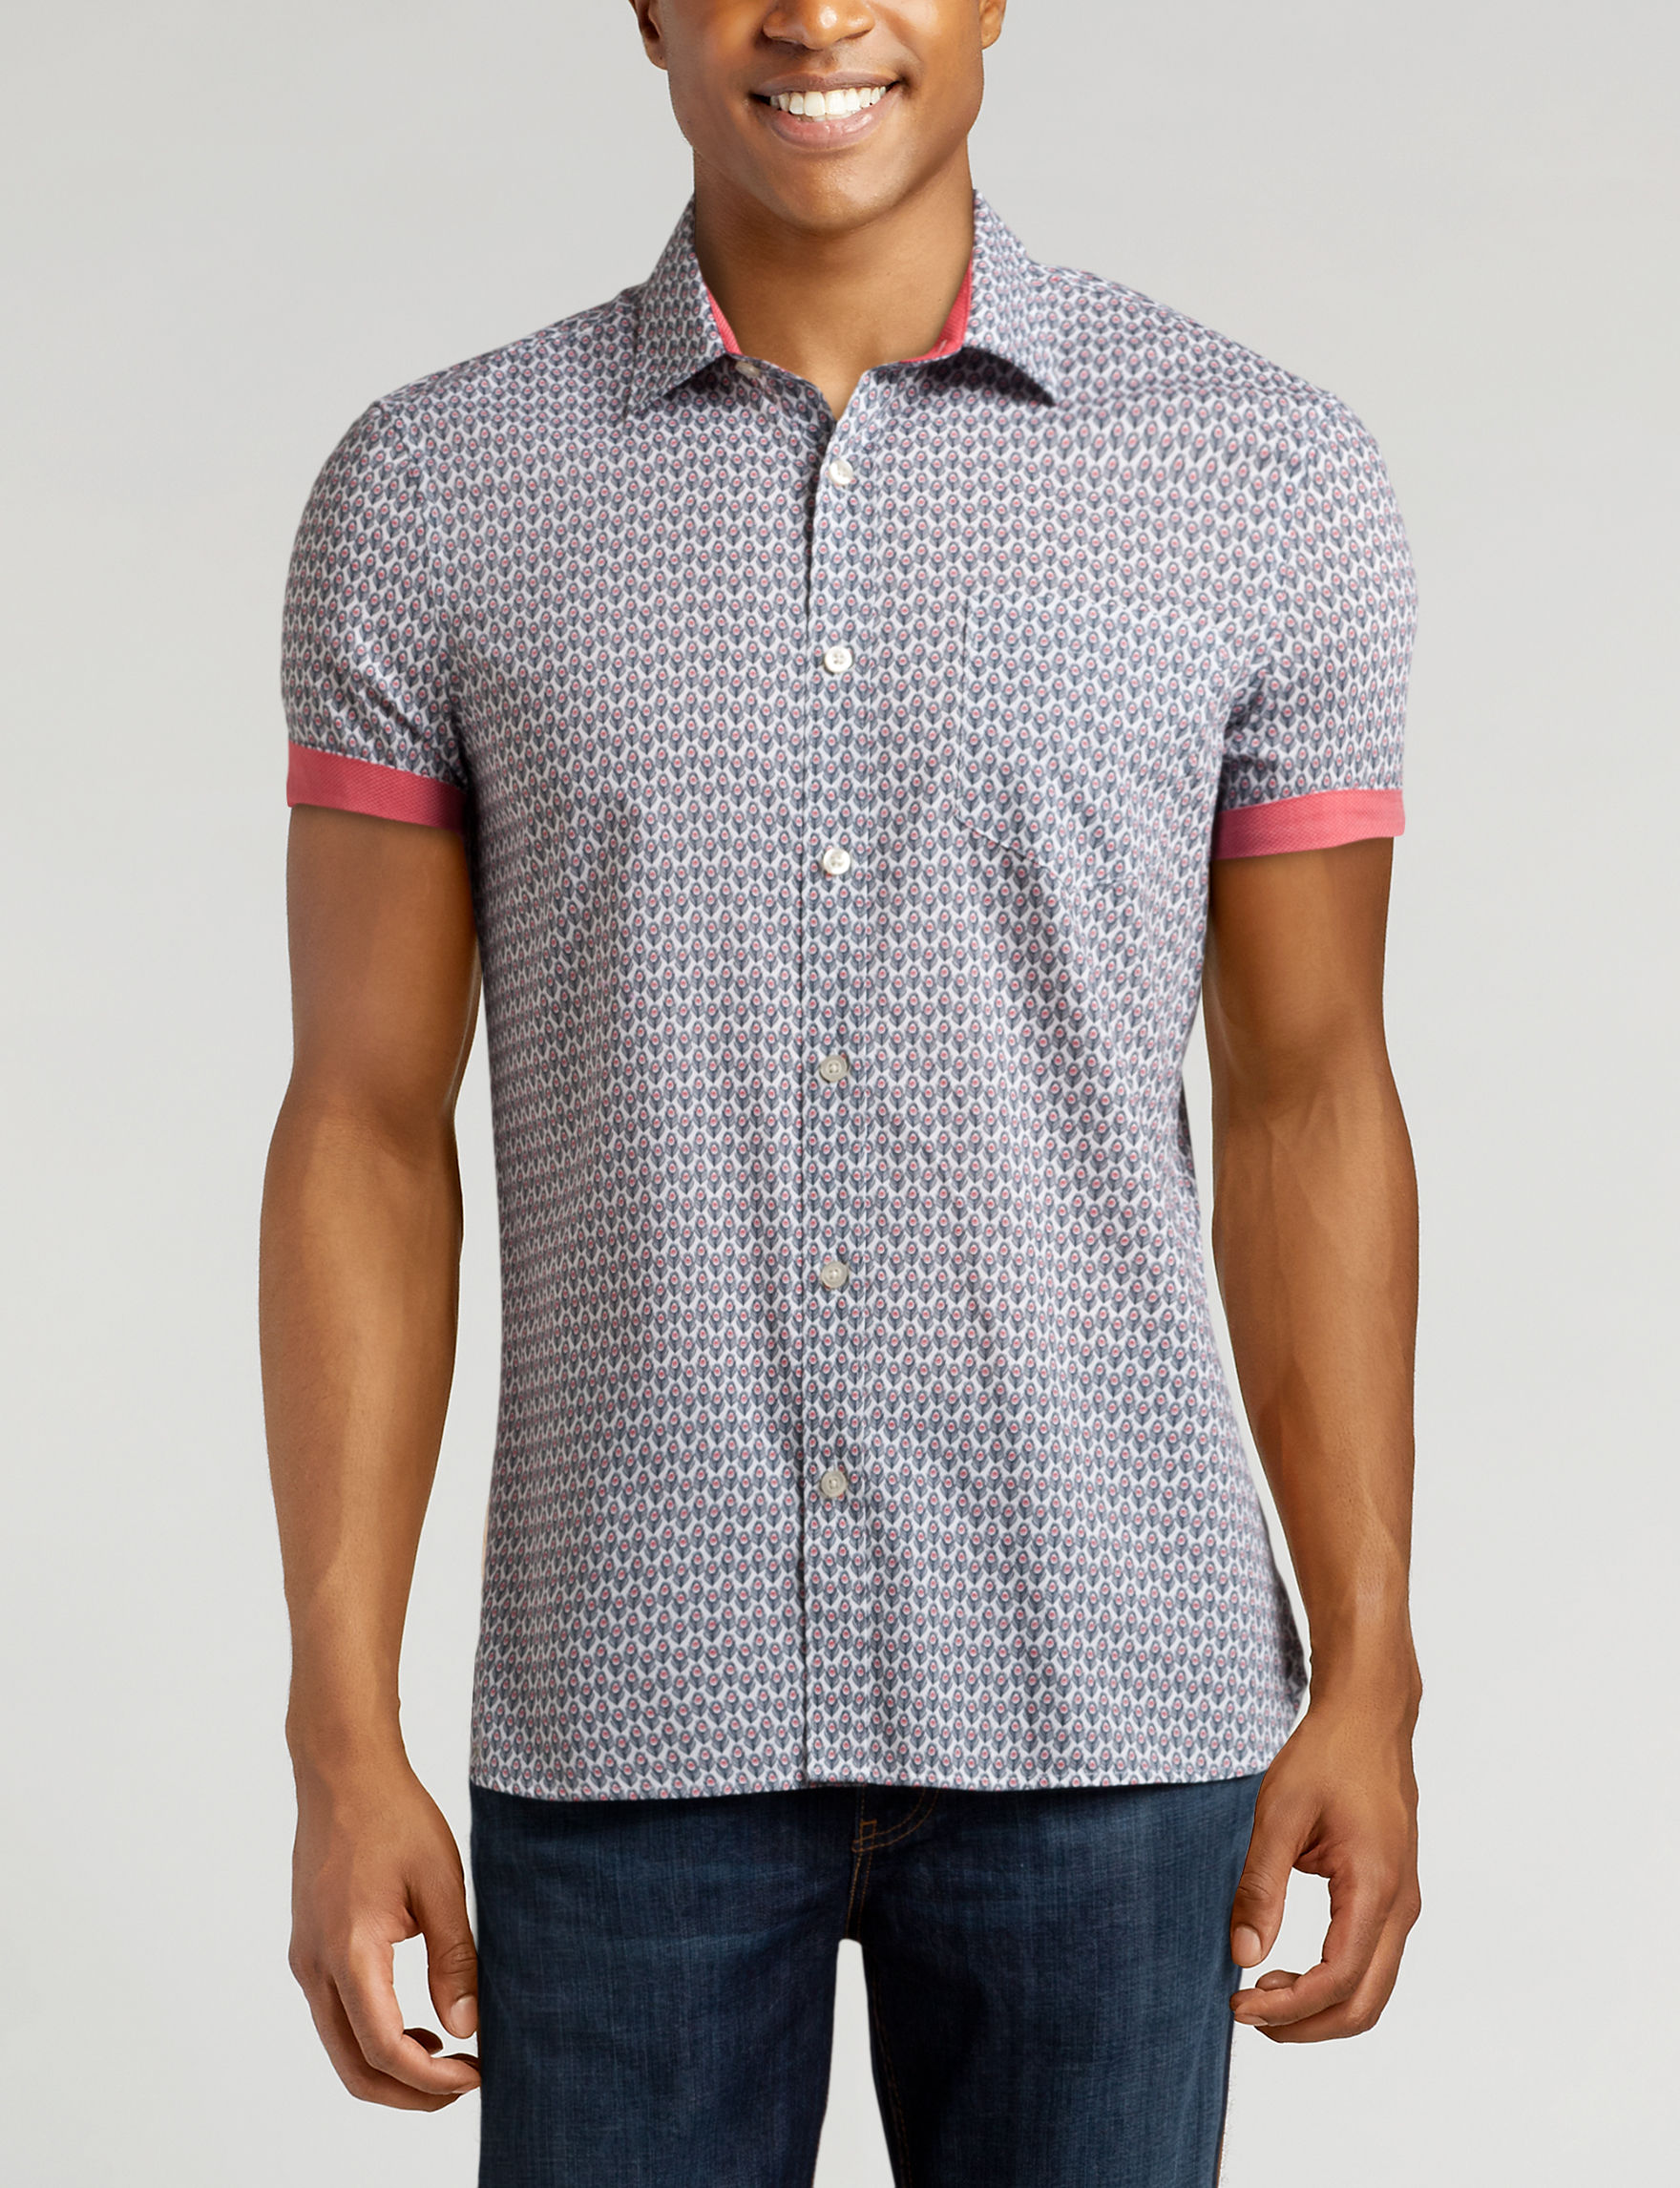 Axist Red / Black / White Casual Button Down Shirts